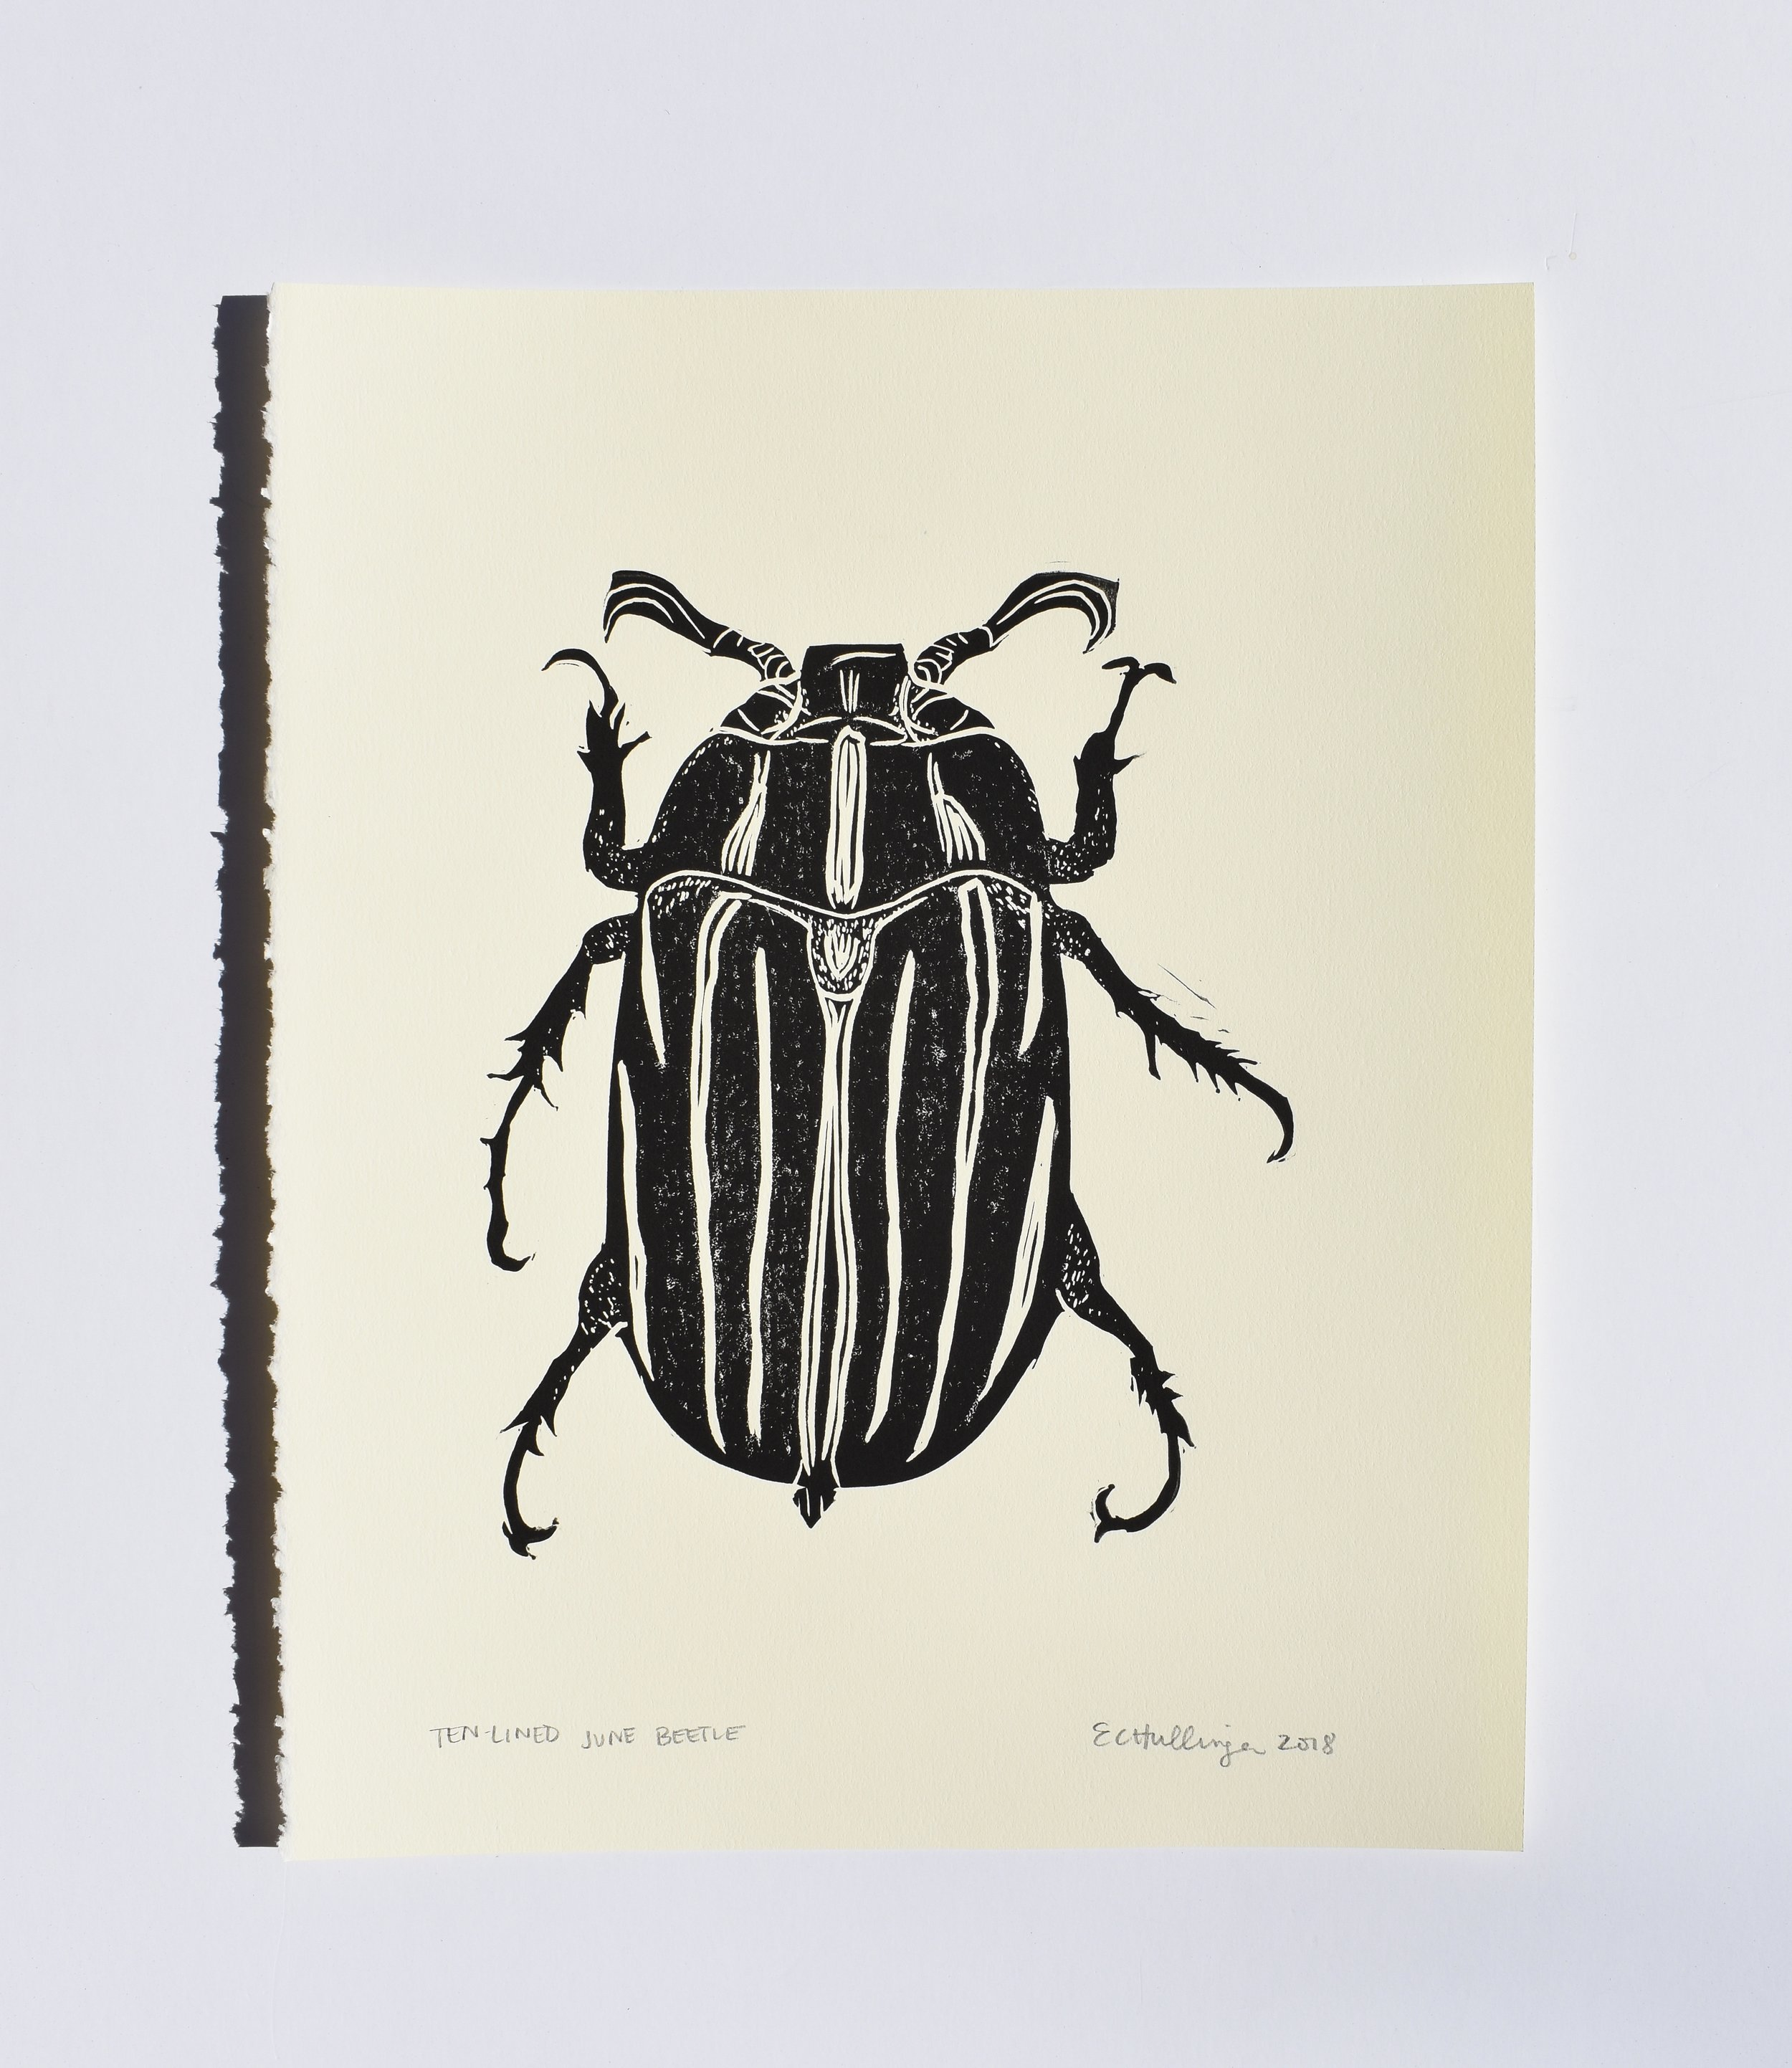 Ten-Lined June Beetle, 2018